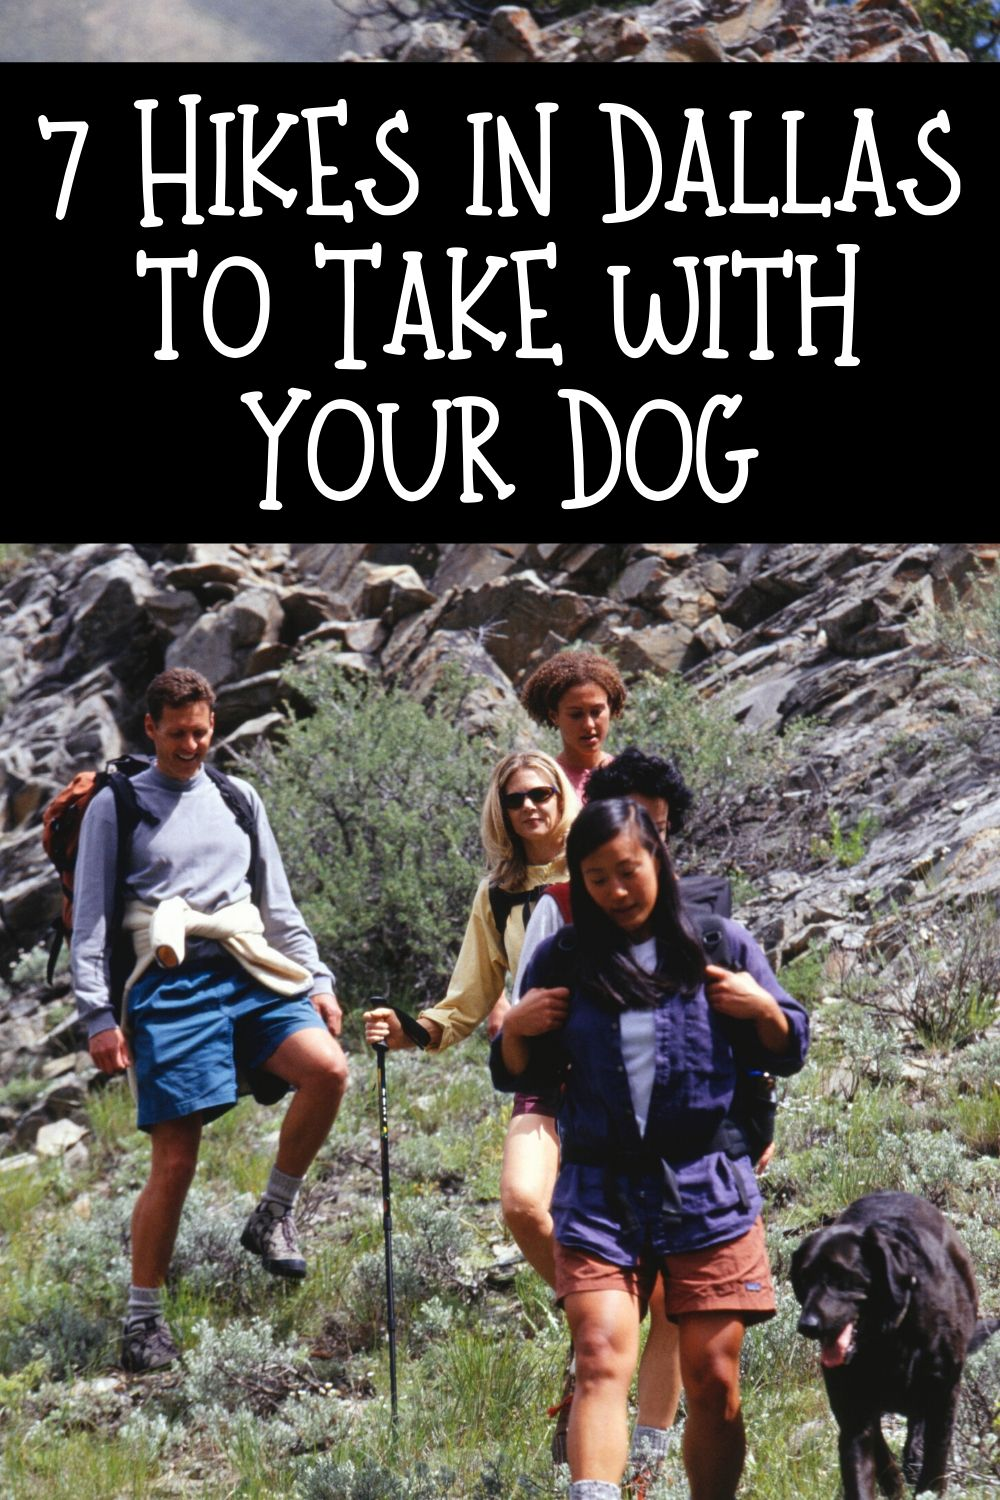 If you are new to Dallas living you might not know that there are some great Dallas hiking trails out there you can enjoy with your dogs. Hiking is great exercise for people and for dogs! If you are trying to mix it up and get away from your standard after work walk, these hiking trails might be just the thing!